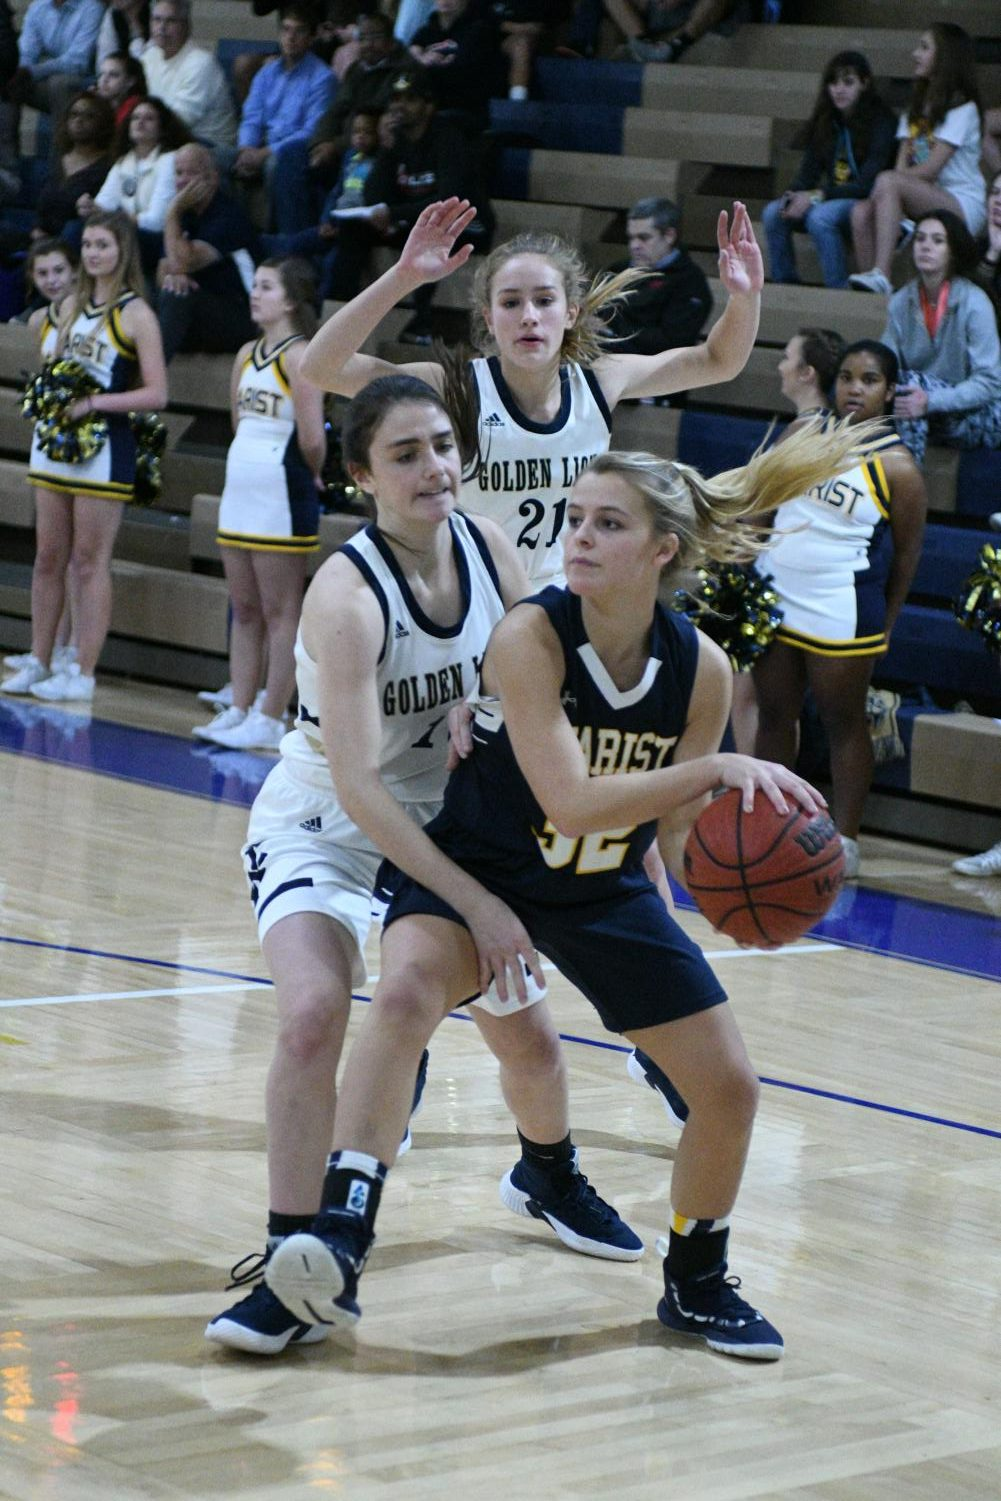 Sophomores Anna Elizabeth Whitlark and Lindsey Broadway defend a Marist player at a home game in December. The team won  41-32, earning their first victory of the season.